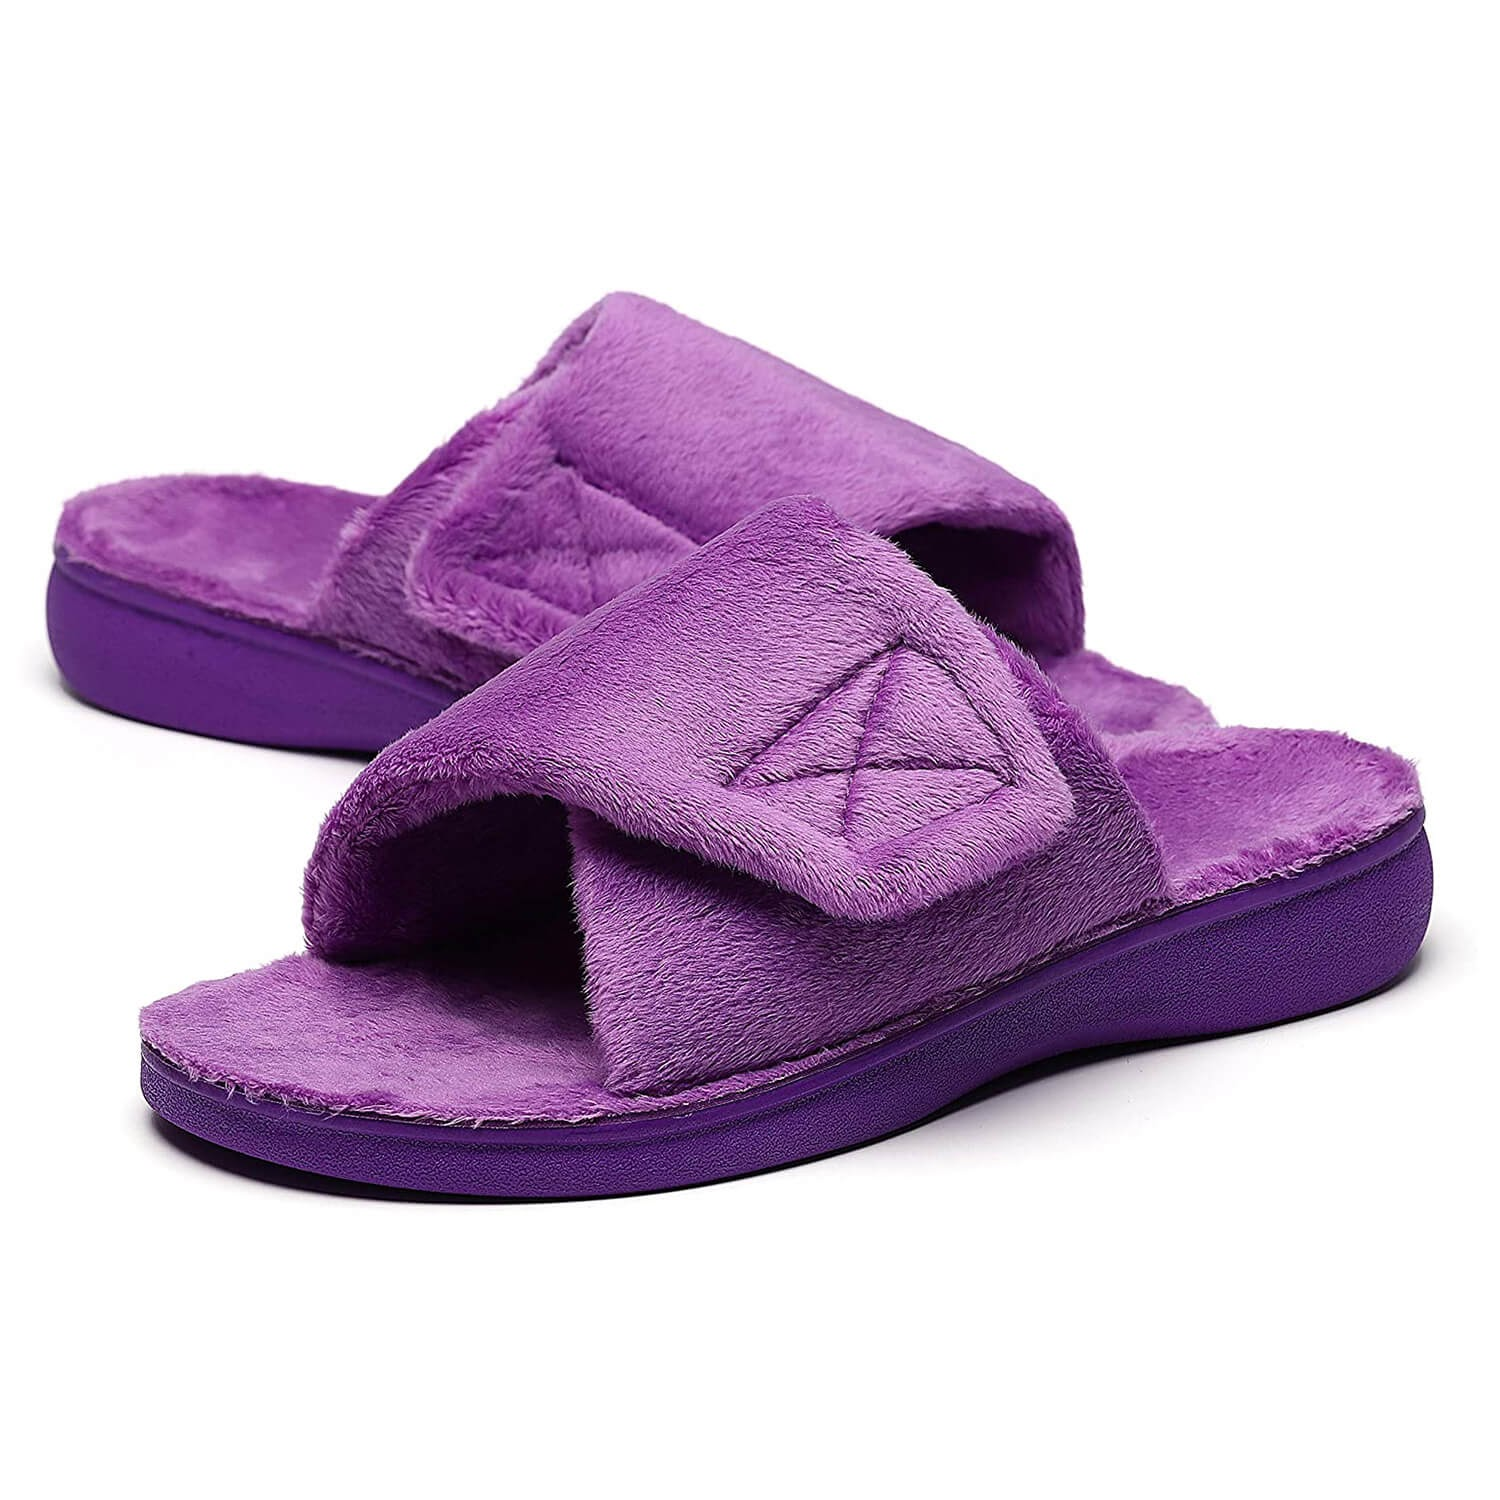 SOLLBEAM Fuzzy House Slippers with Arch Support Orthotic Heel Cup Sandals